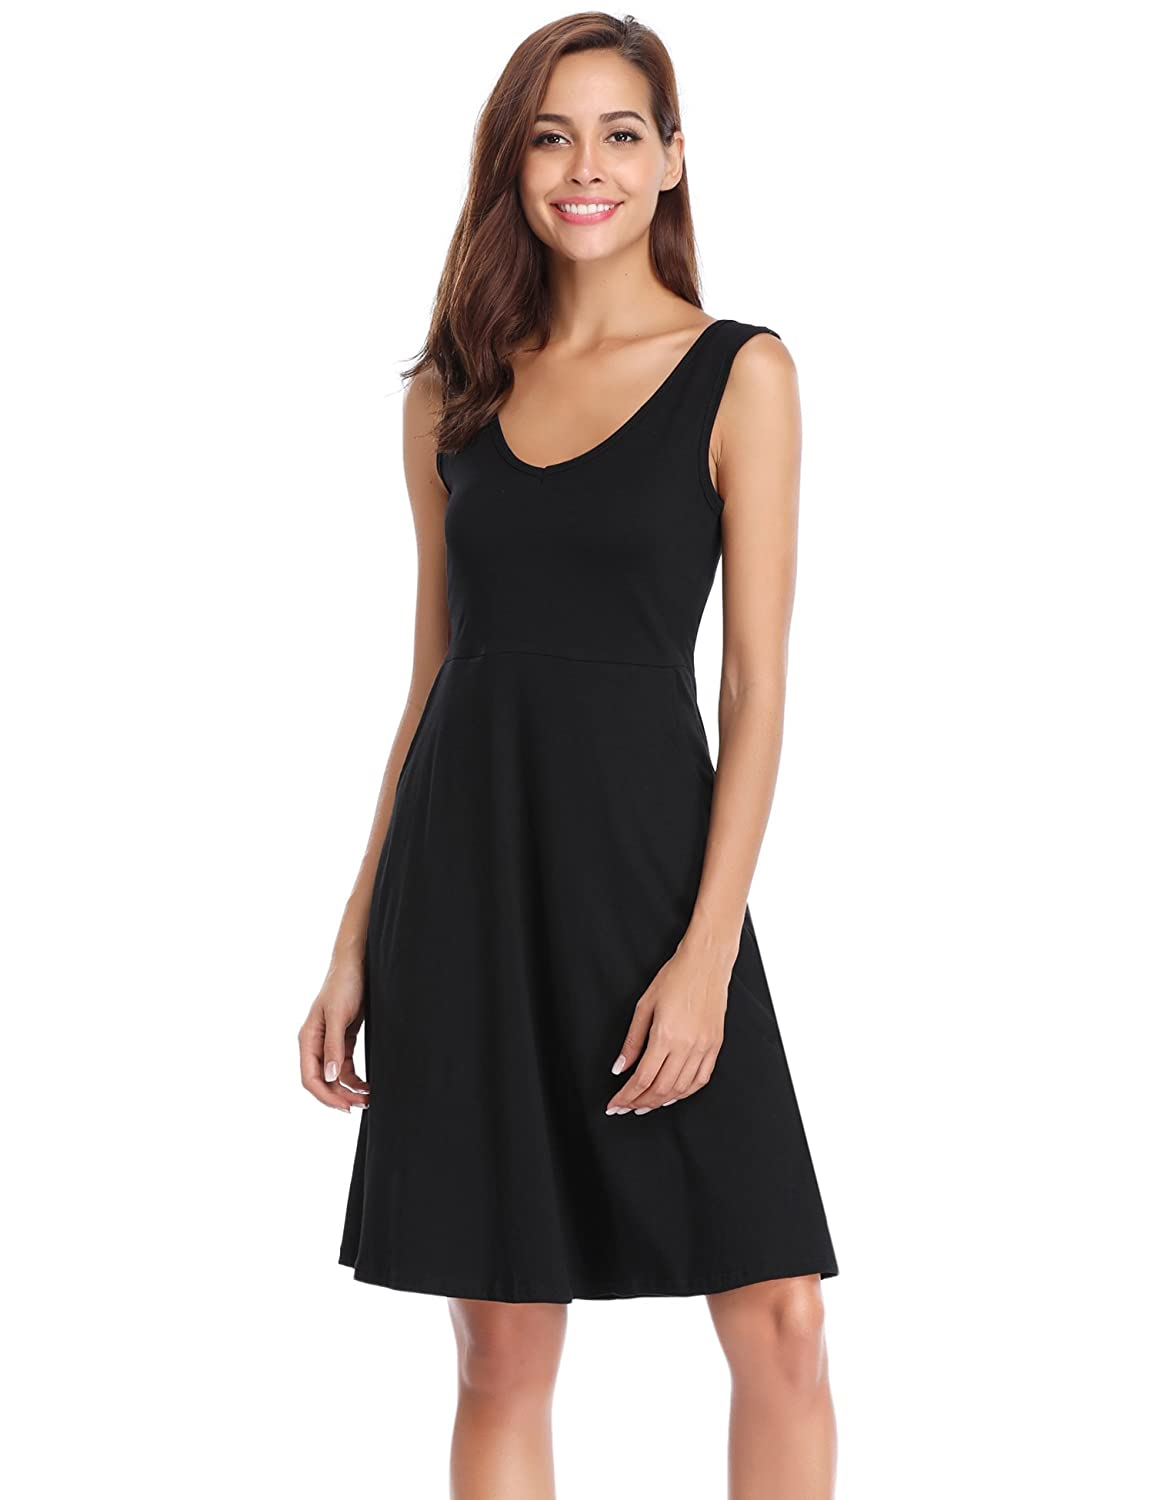 Black_1 Aibrou Women's Nightgown Cotton V Neck Summer Nightshirt Dress Sleepwear